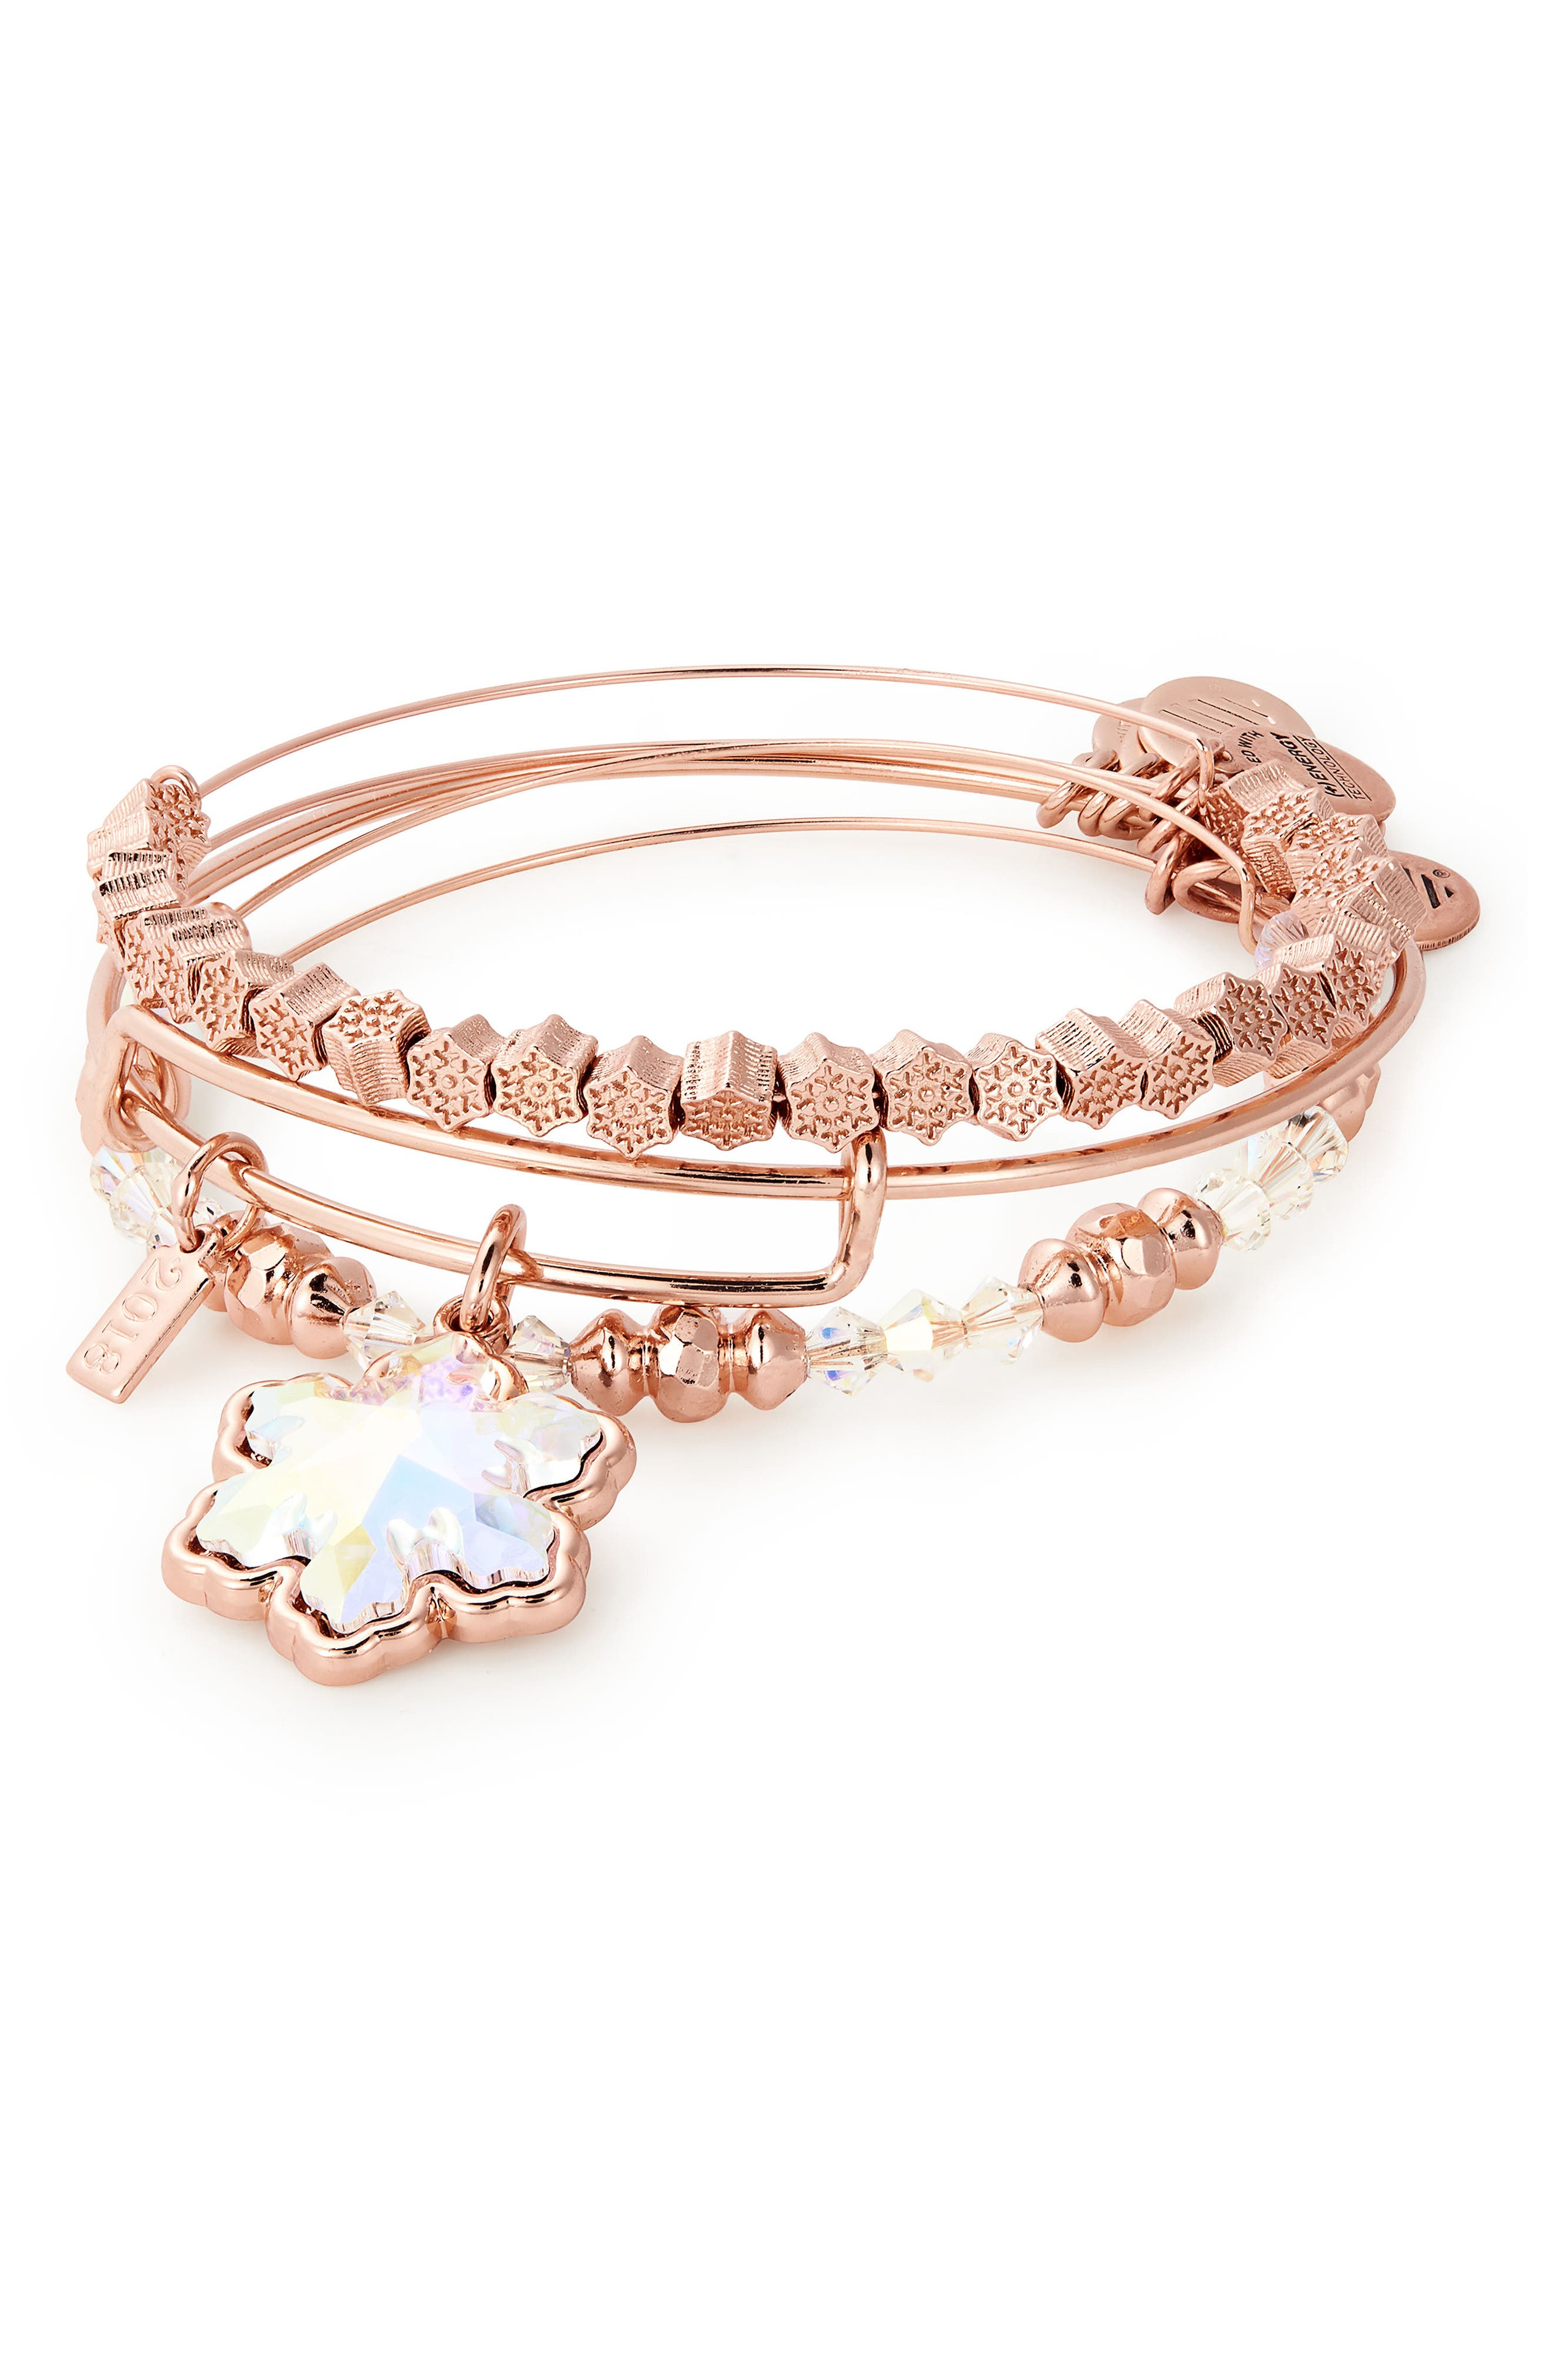 Snowflake Set of 3 Adjustable Wire Bangles,                             Main thumbnail 1, color,                             ROSE GOLD